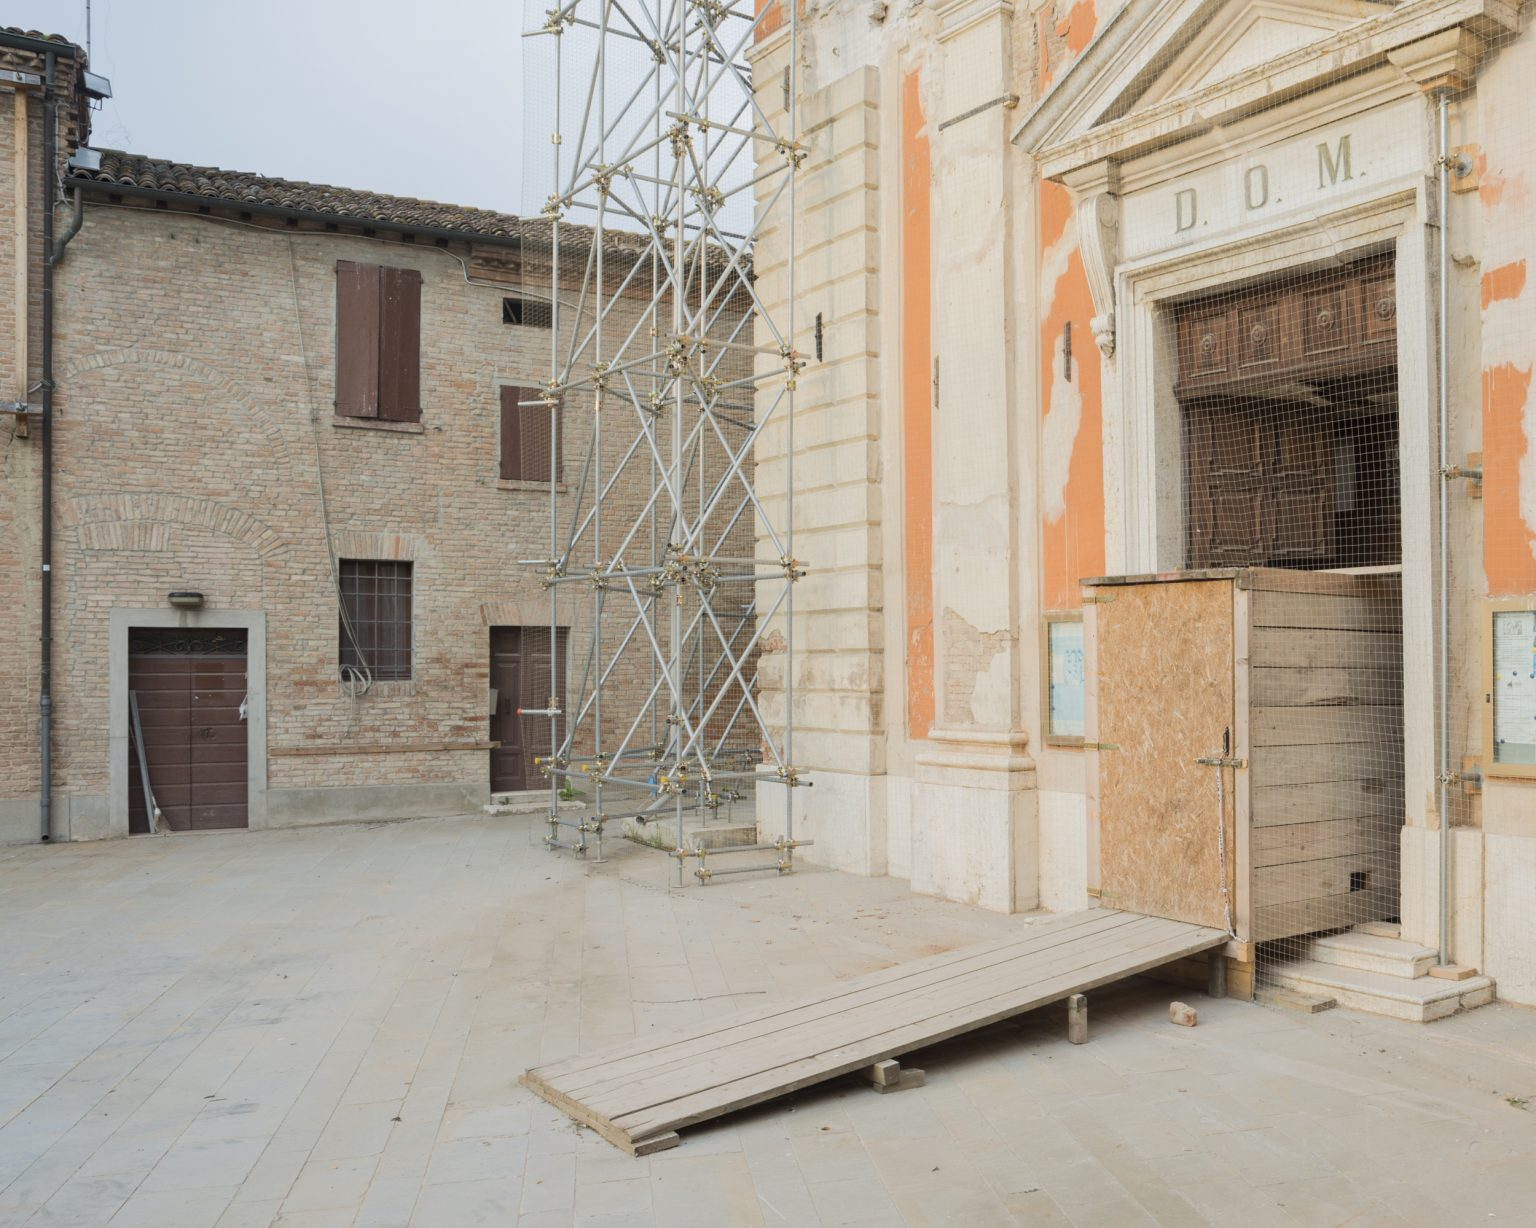 Church of San Felice Vescovo Martire after the earthquake in 2012. Wooden structure to provide safe access to the church. San Felice sul Panaro, Modena, Italy, 2016